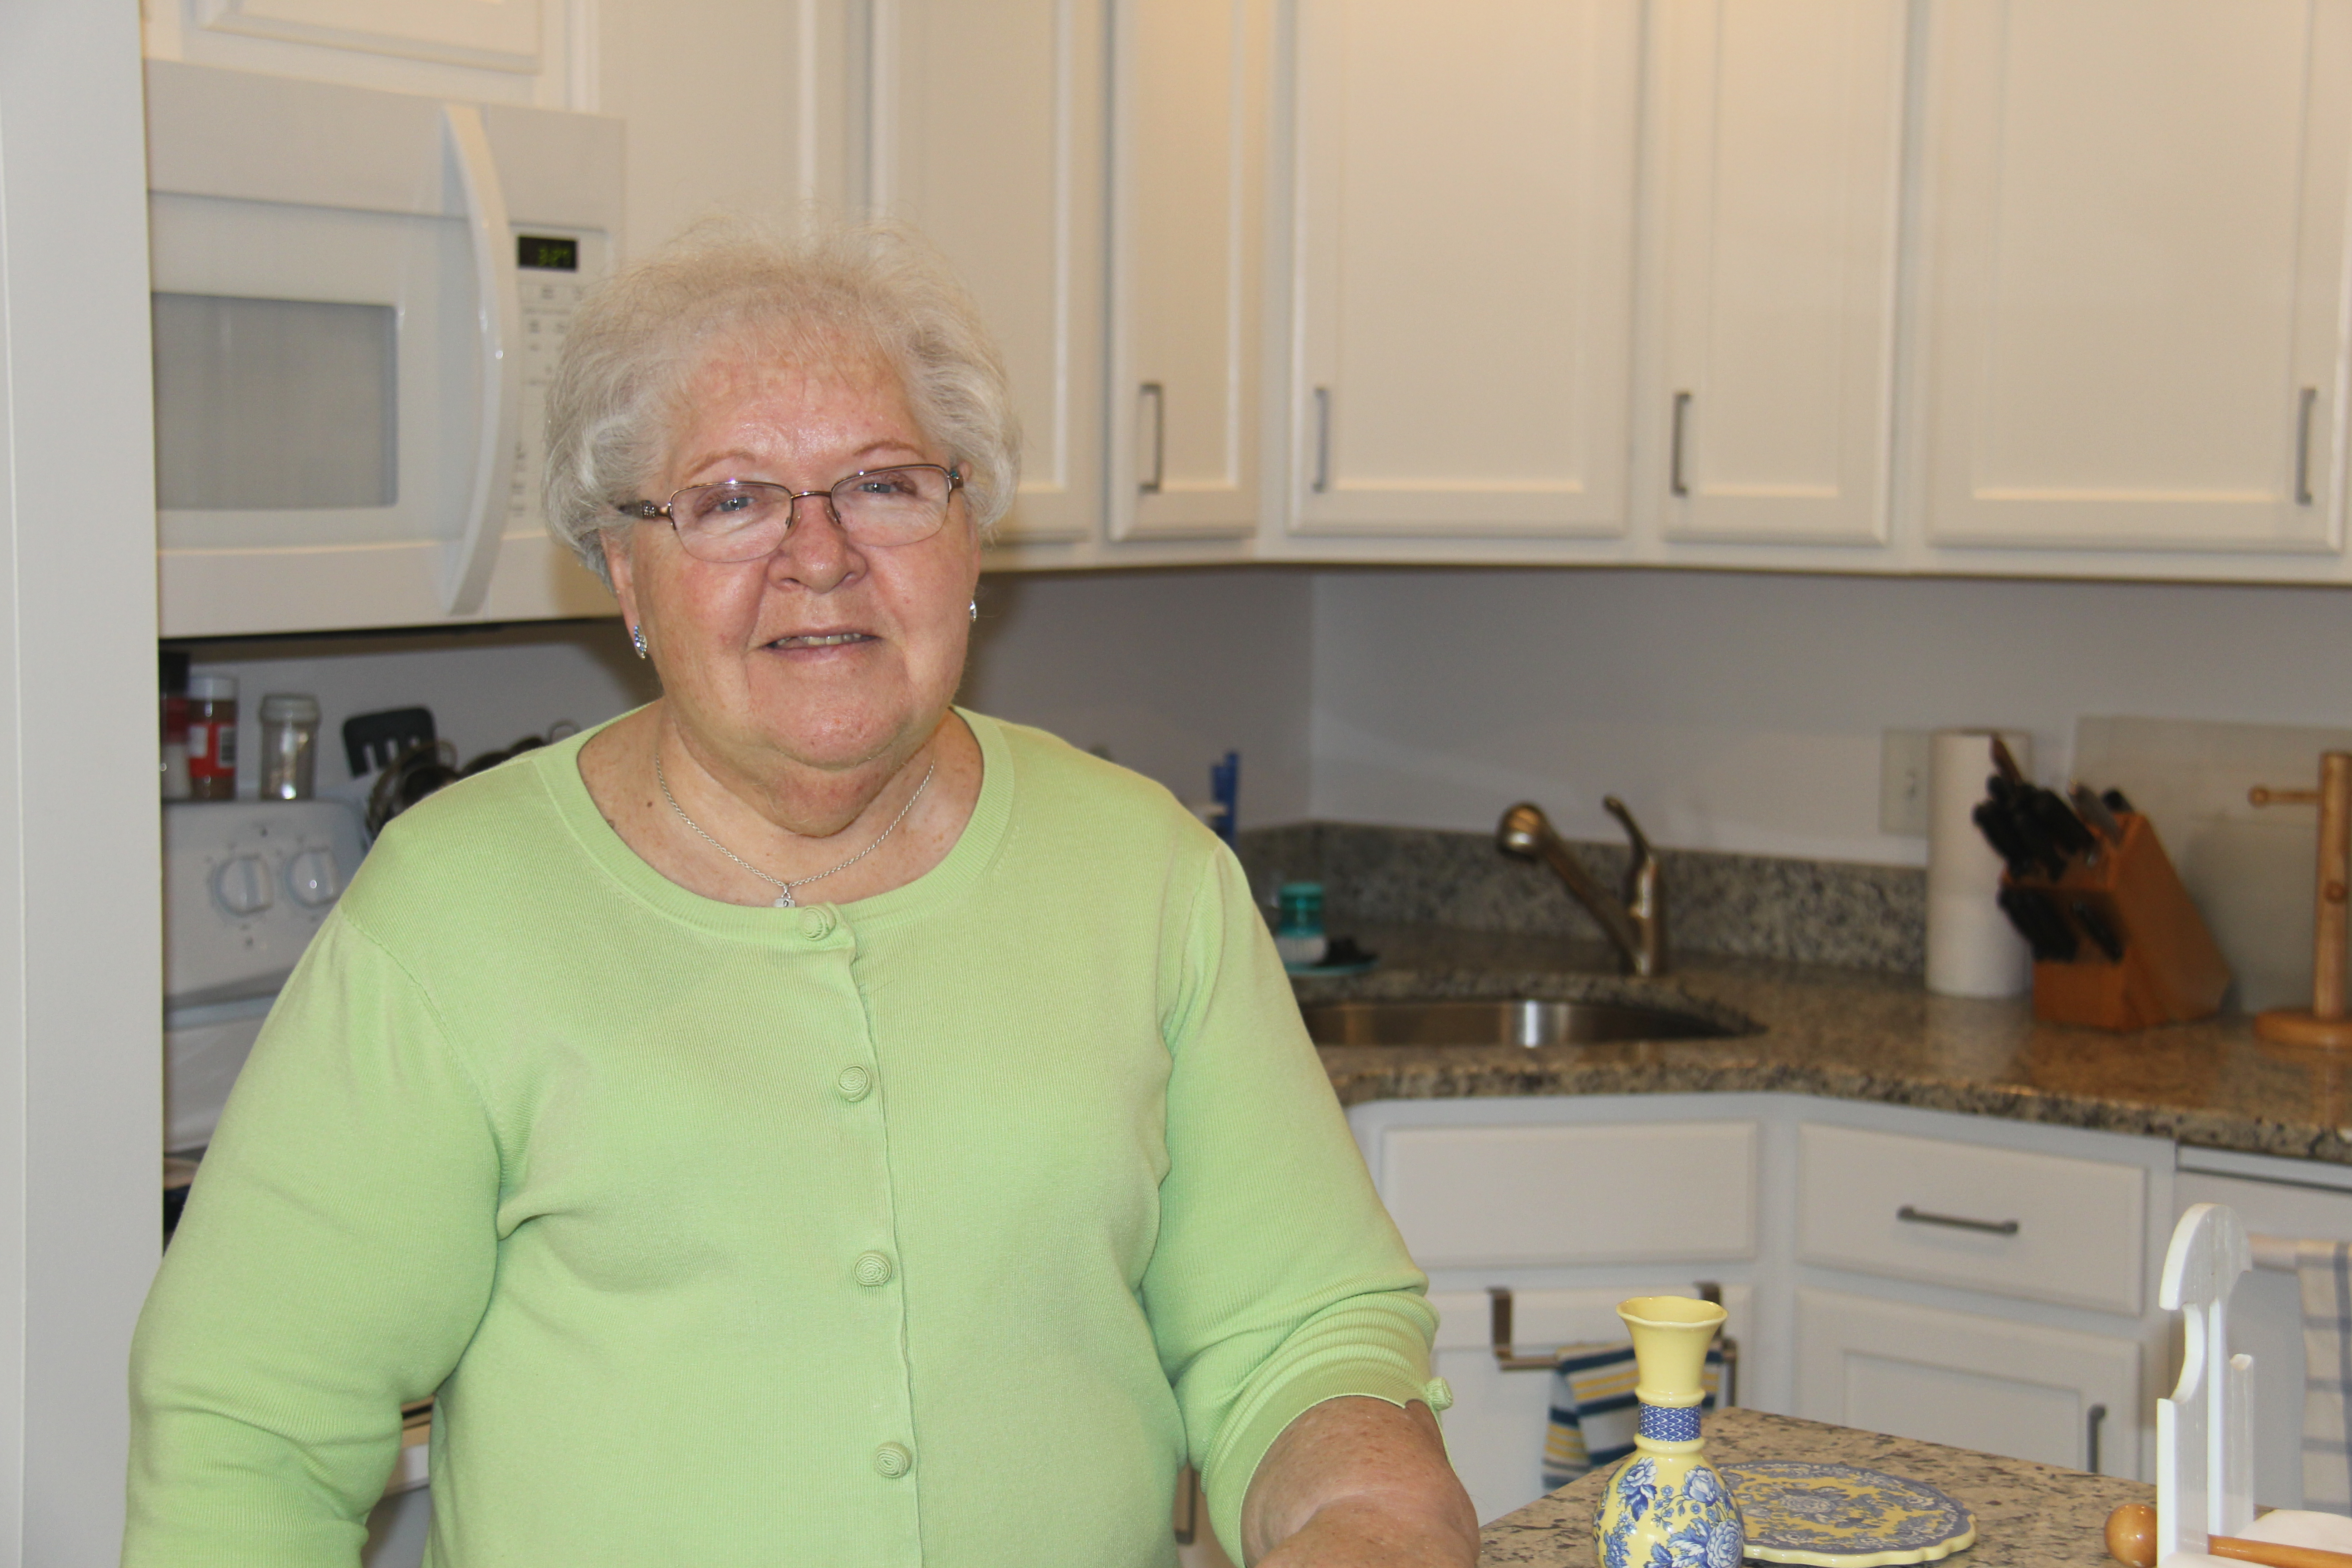 Photo caption: Margaret Raymond traded unanticipated home maintenance costs for predictable monthly expenses when she moved to Brooksby Village in December 2018.